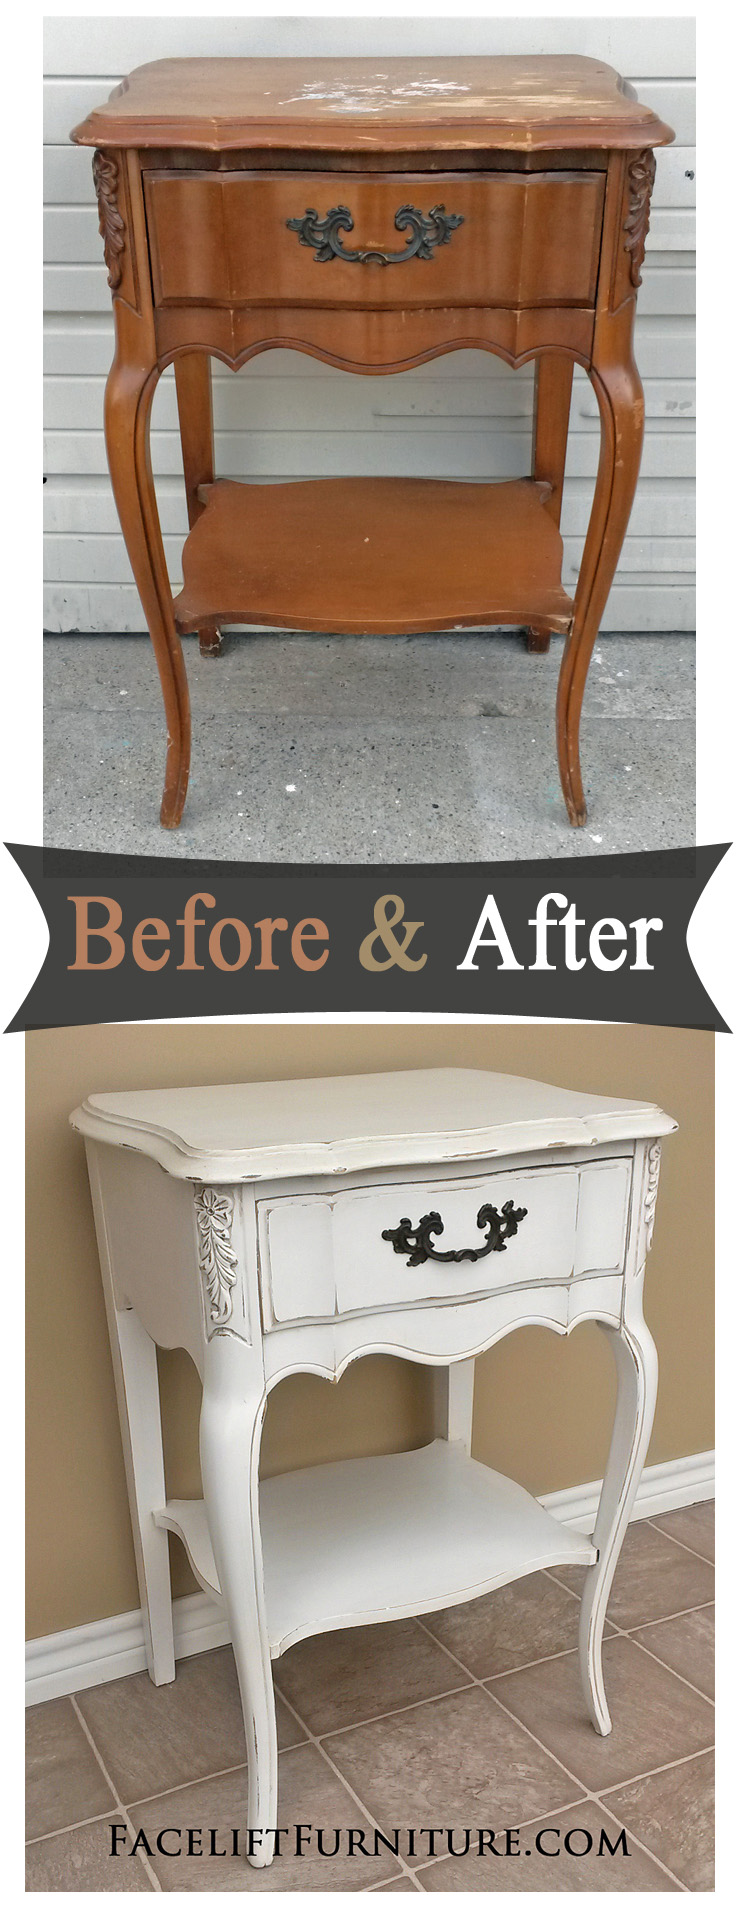 Painted French Provincial Bedroom Furniture Antiqued White French Nightstand Before After Facelift Furniture